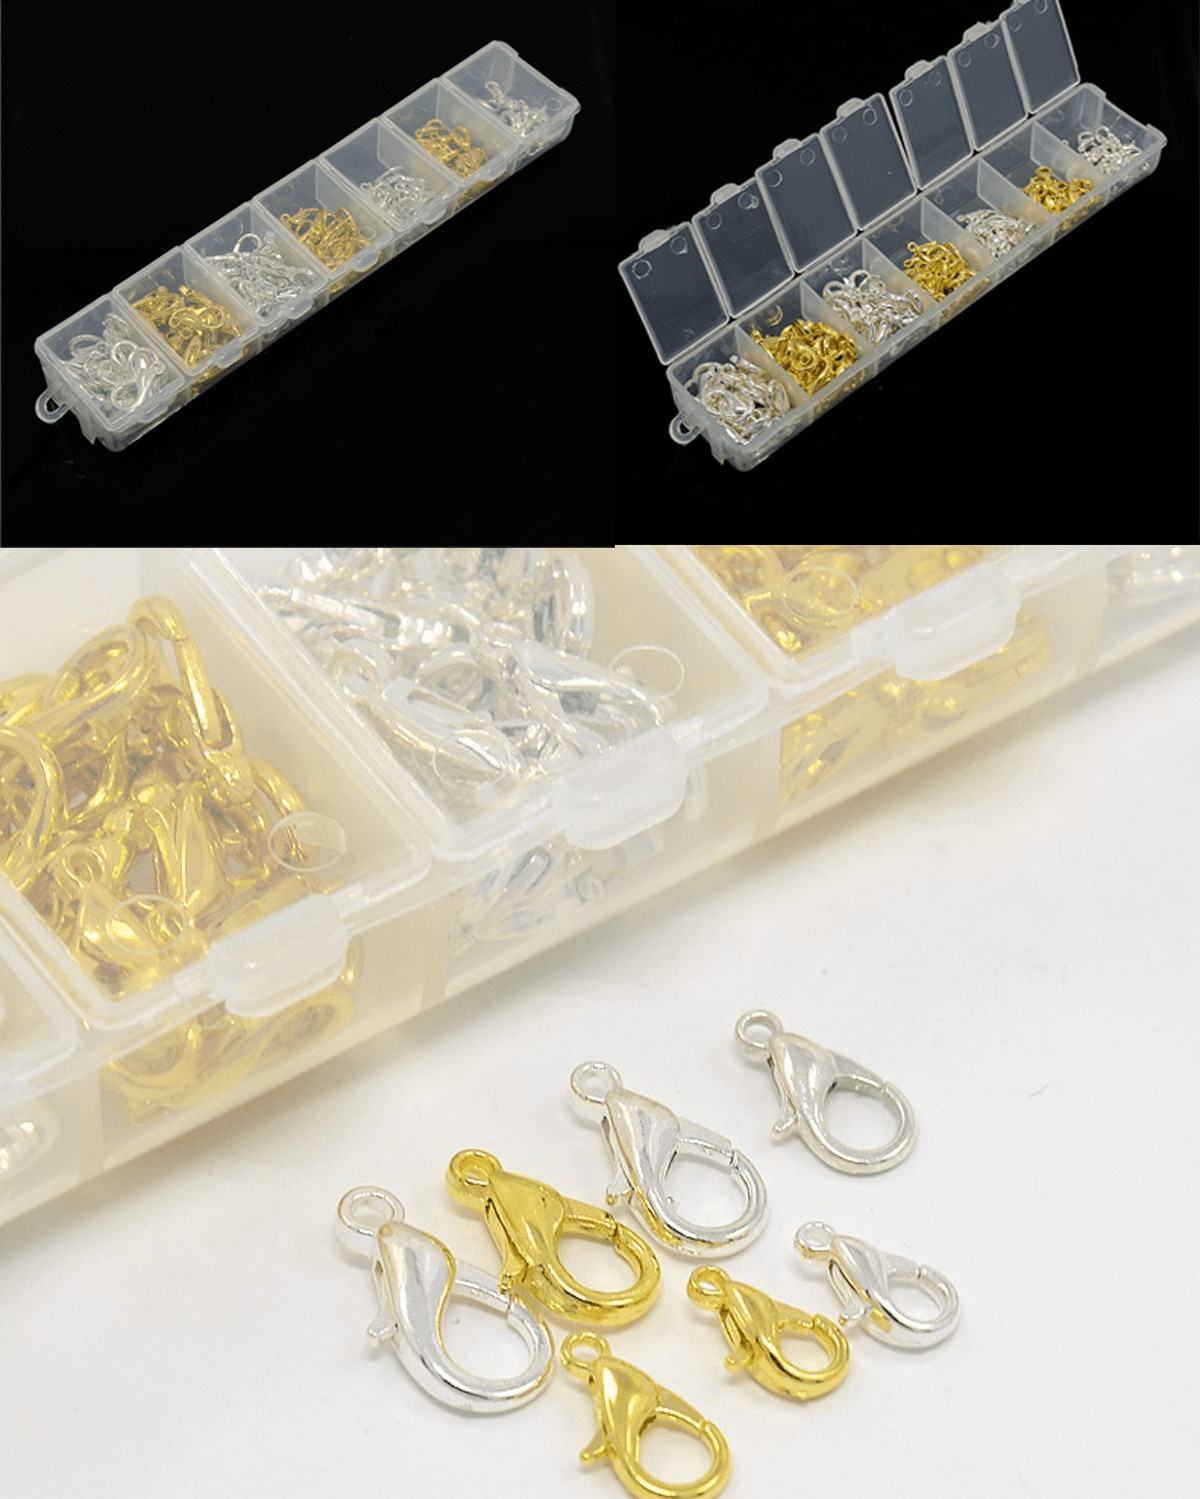 Lobster Claw Clasp assortment of Silver and Gold colors and sizes